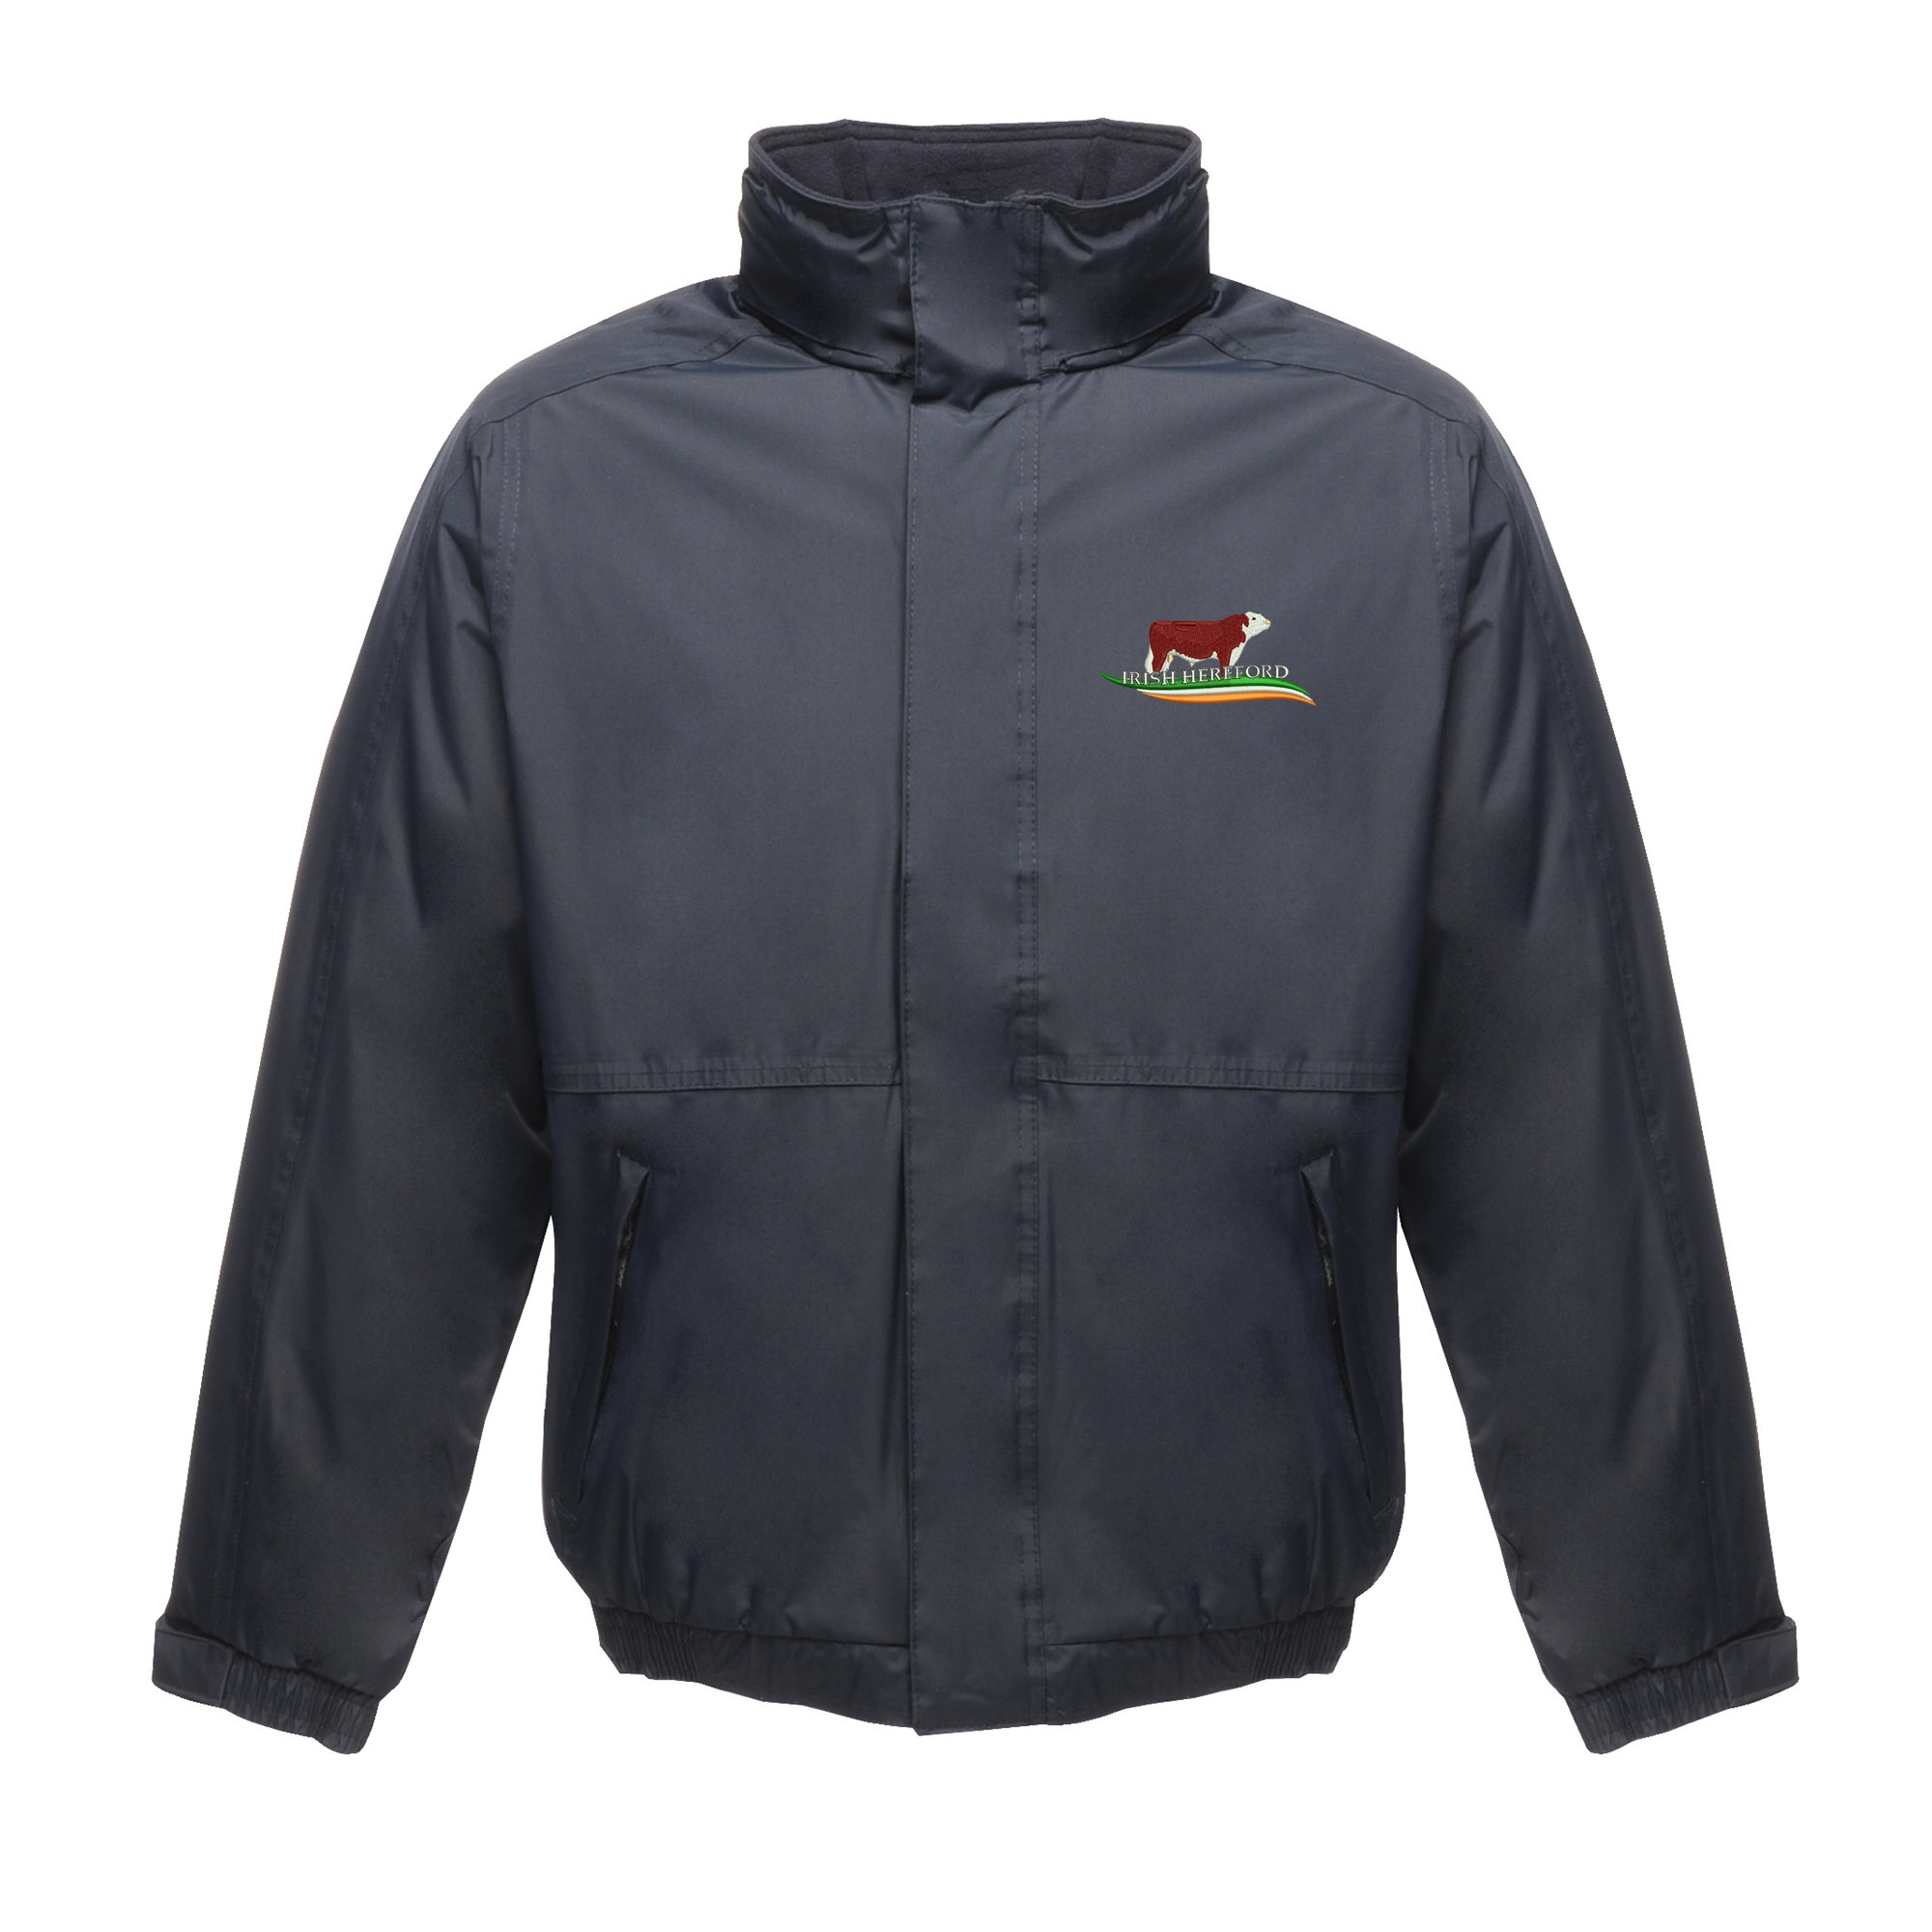 Irish Hereford Adult Dover Jacket